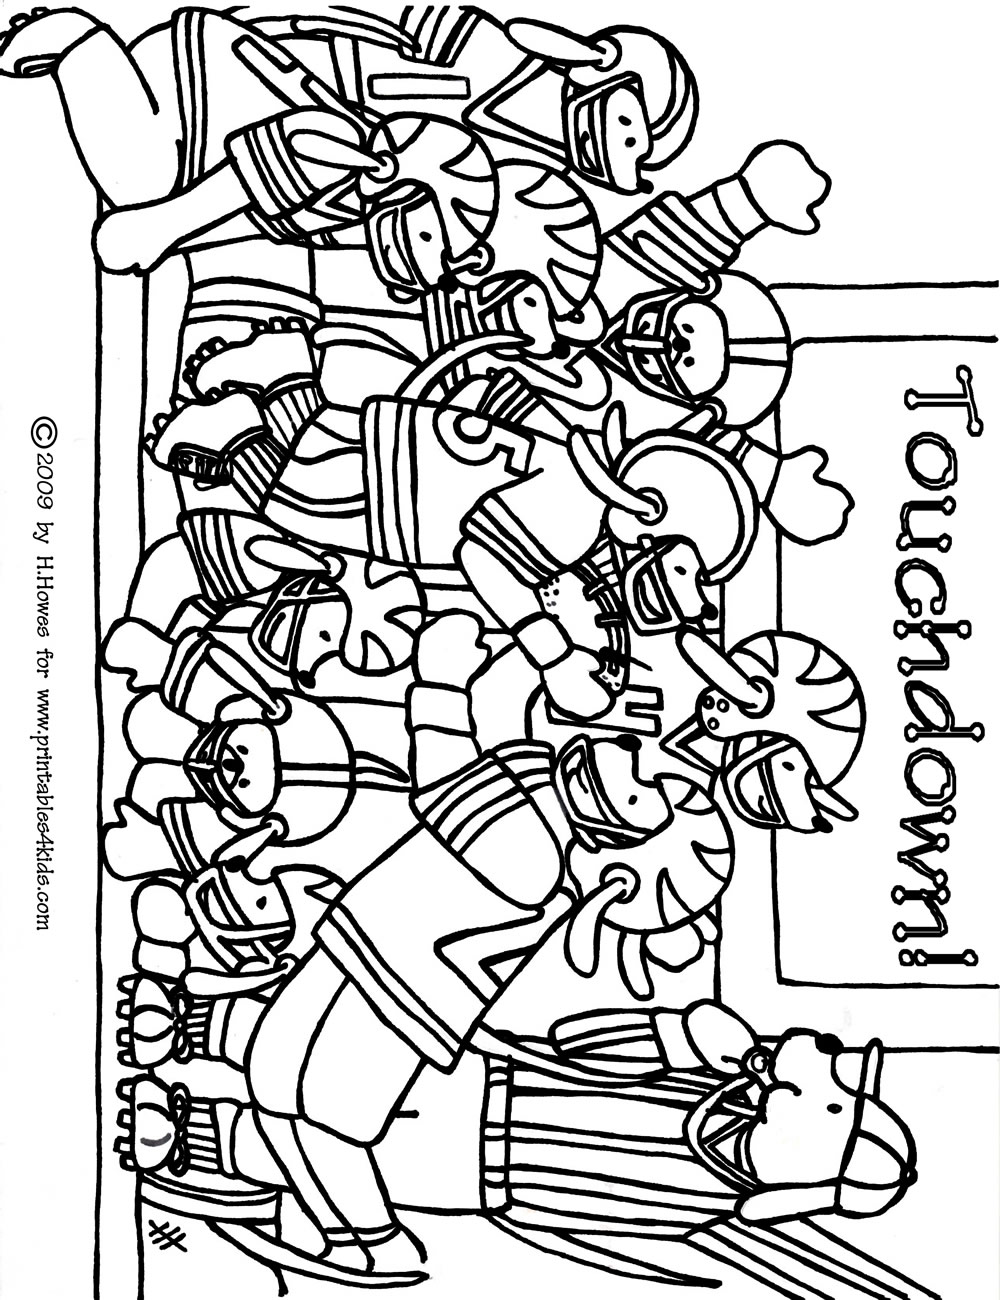 Football Coloring Pages For Kids Printable At Getdrawings Com Free